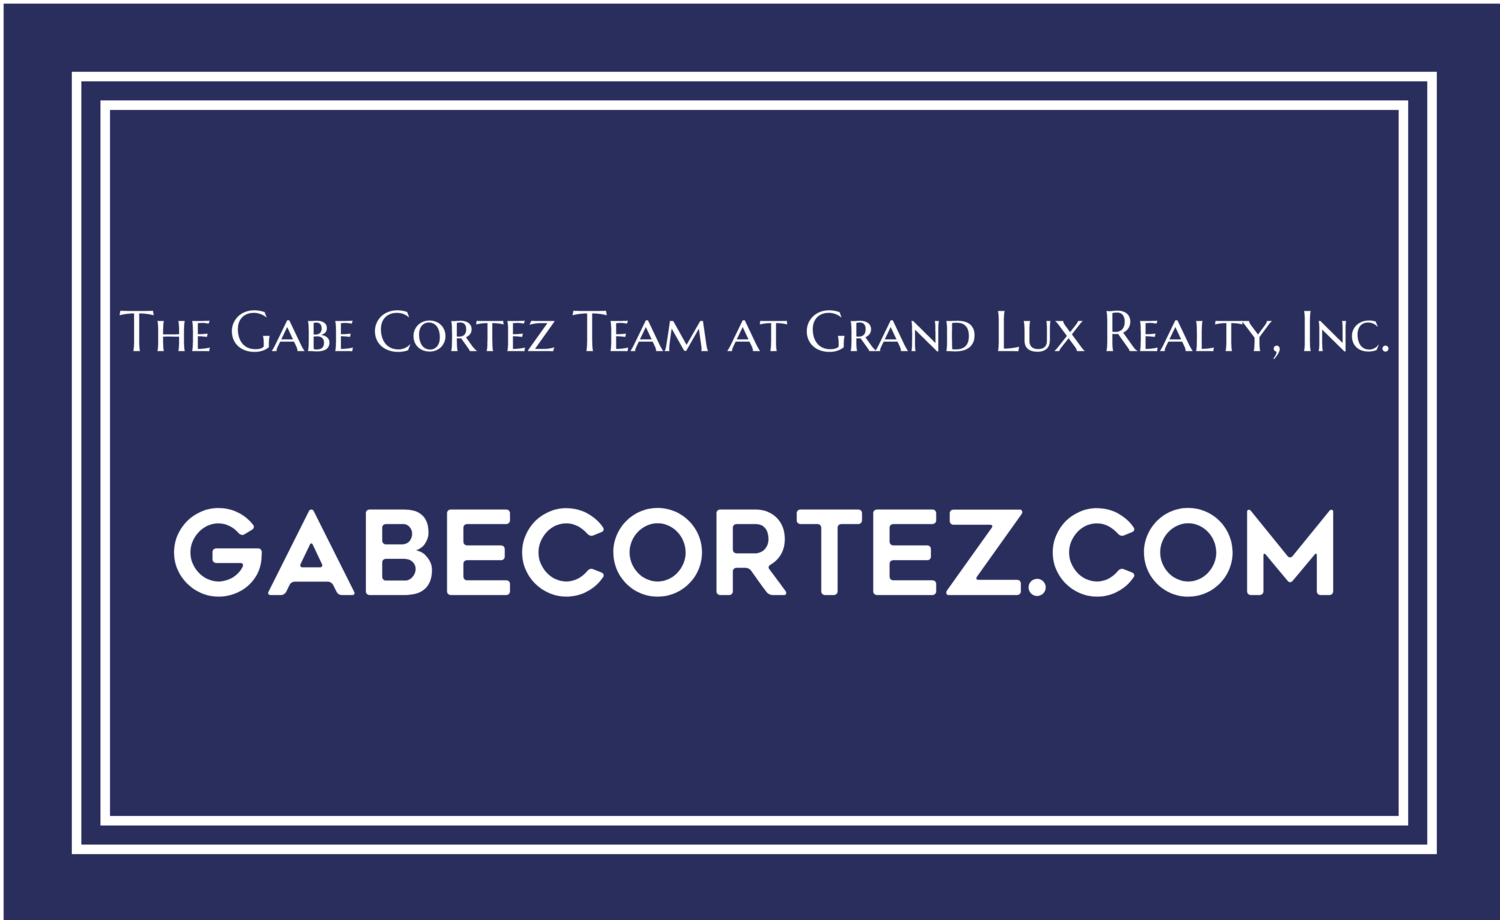 The Gabe Cortez Team